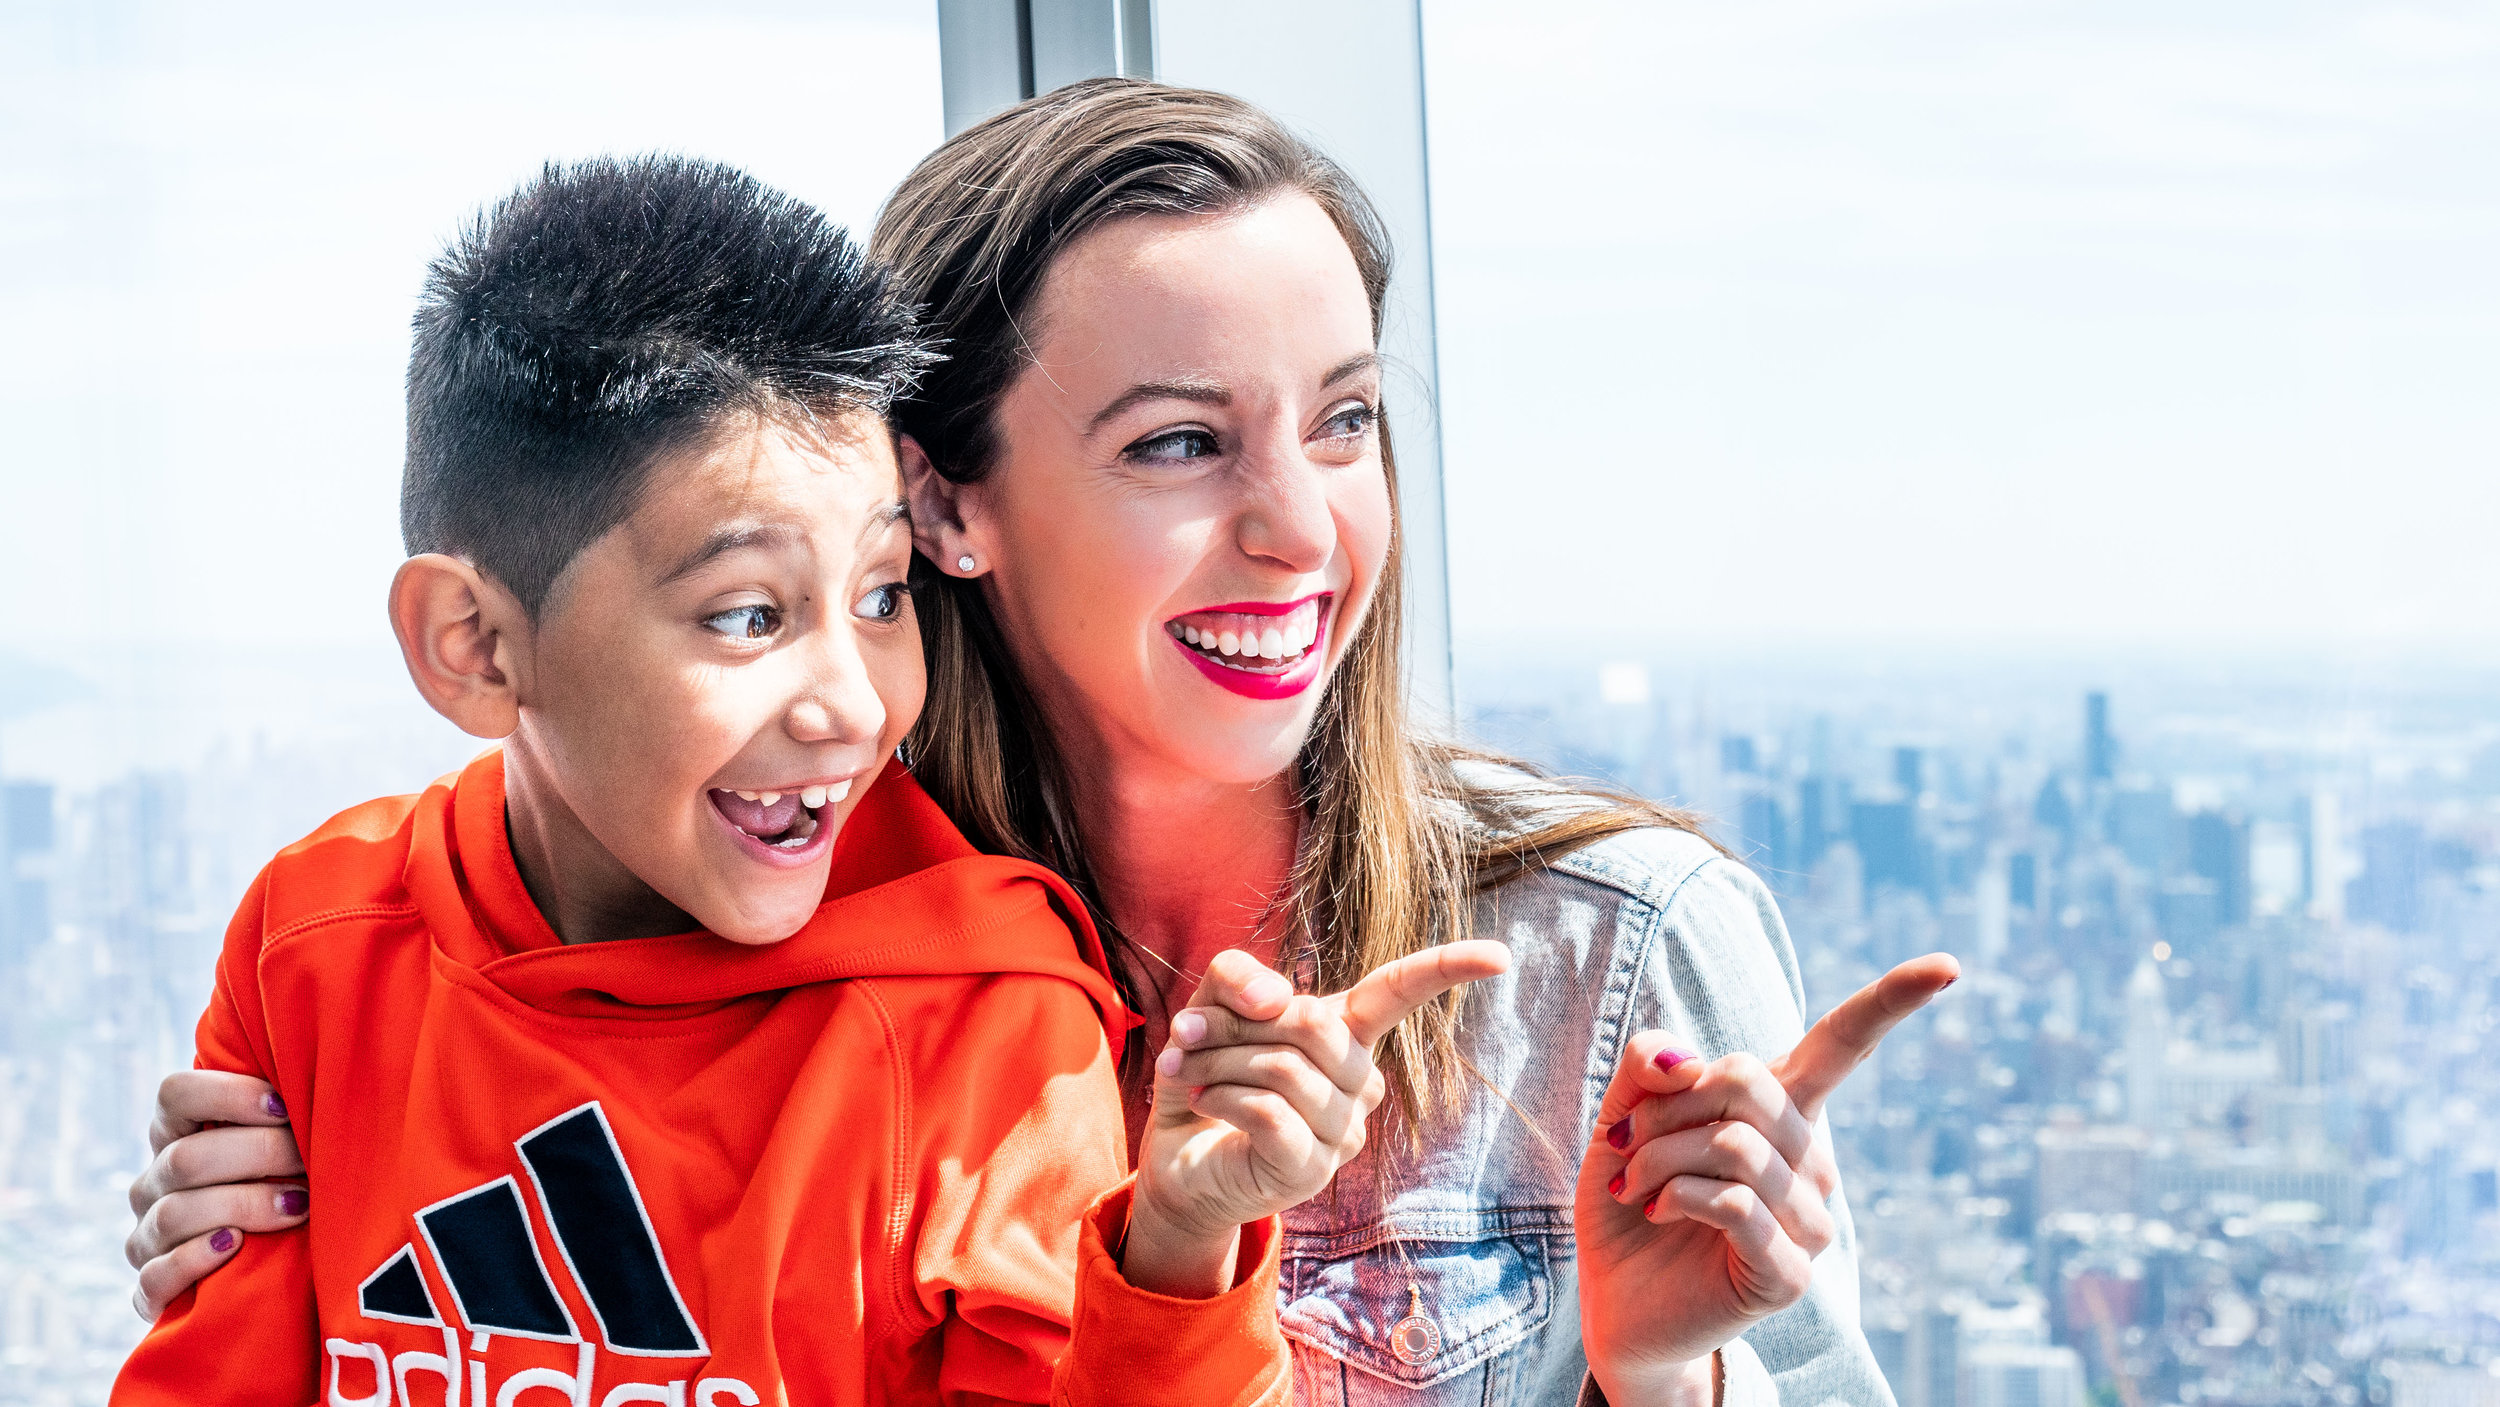 Emmanuel & Sarah enjoying the view from One World Observatory